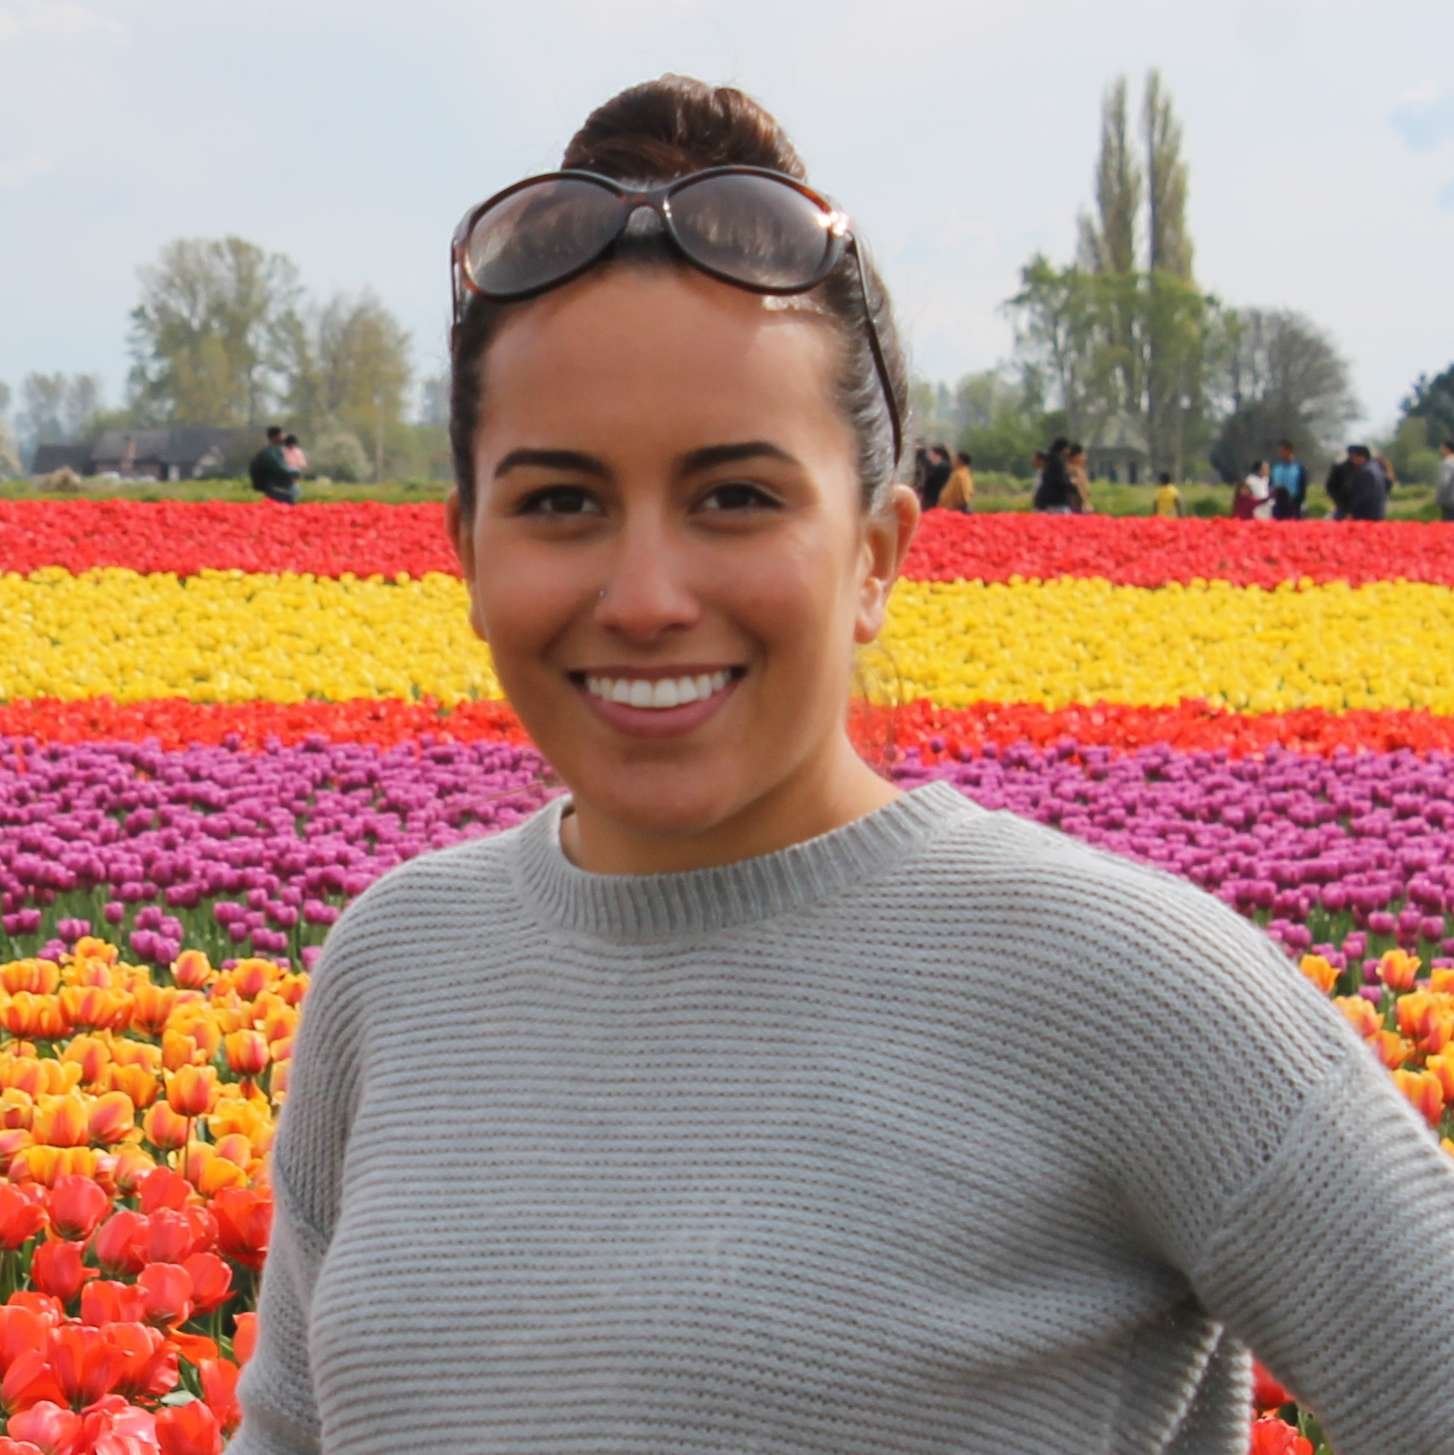 Photo of Alee Zuniga standing in a field of colorful tulips.